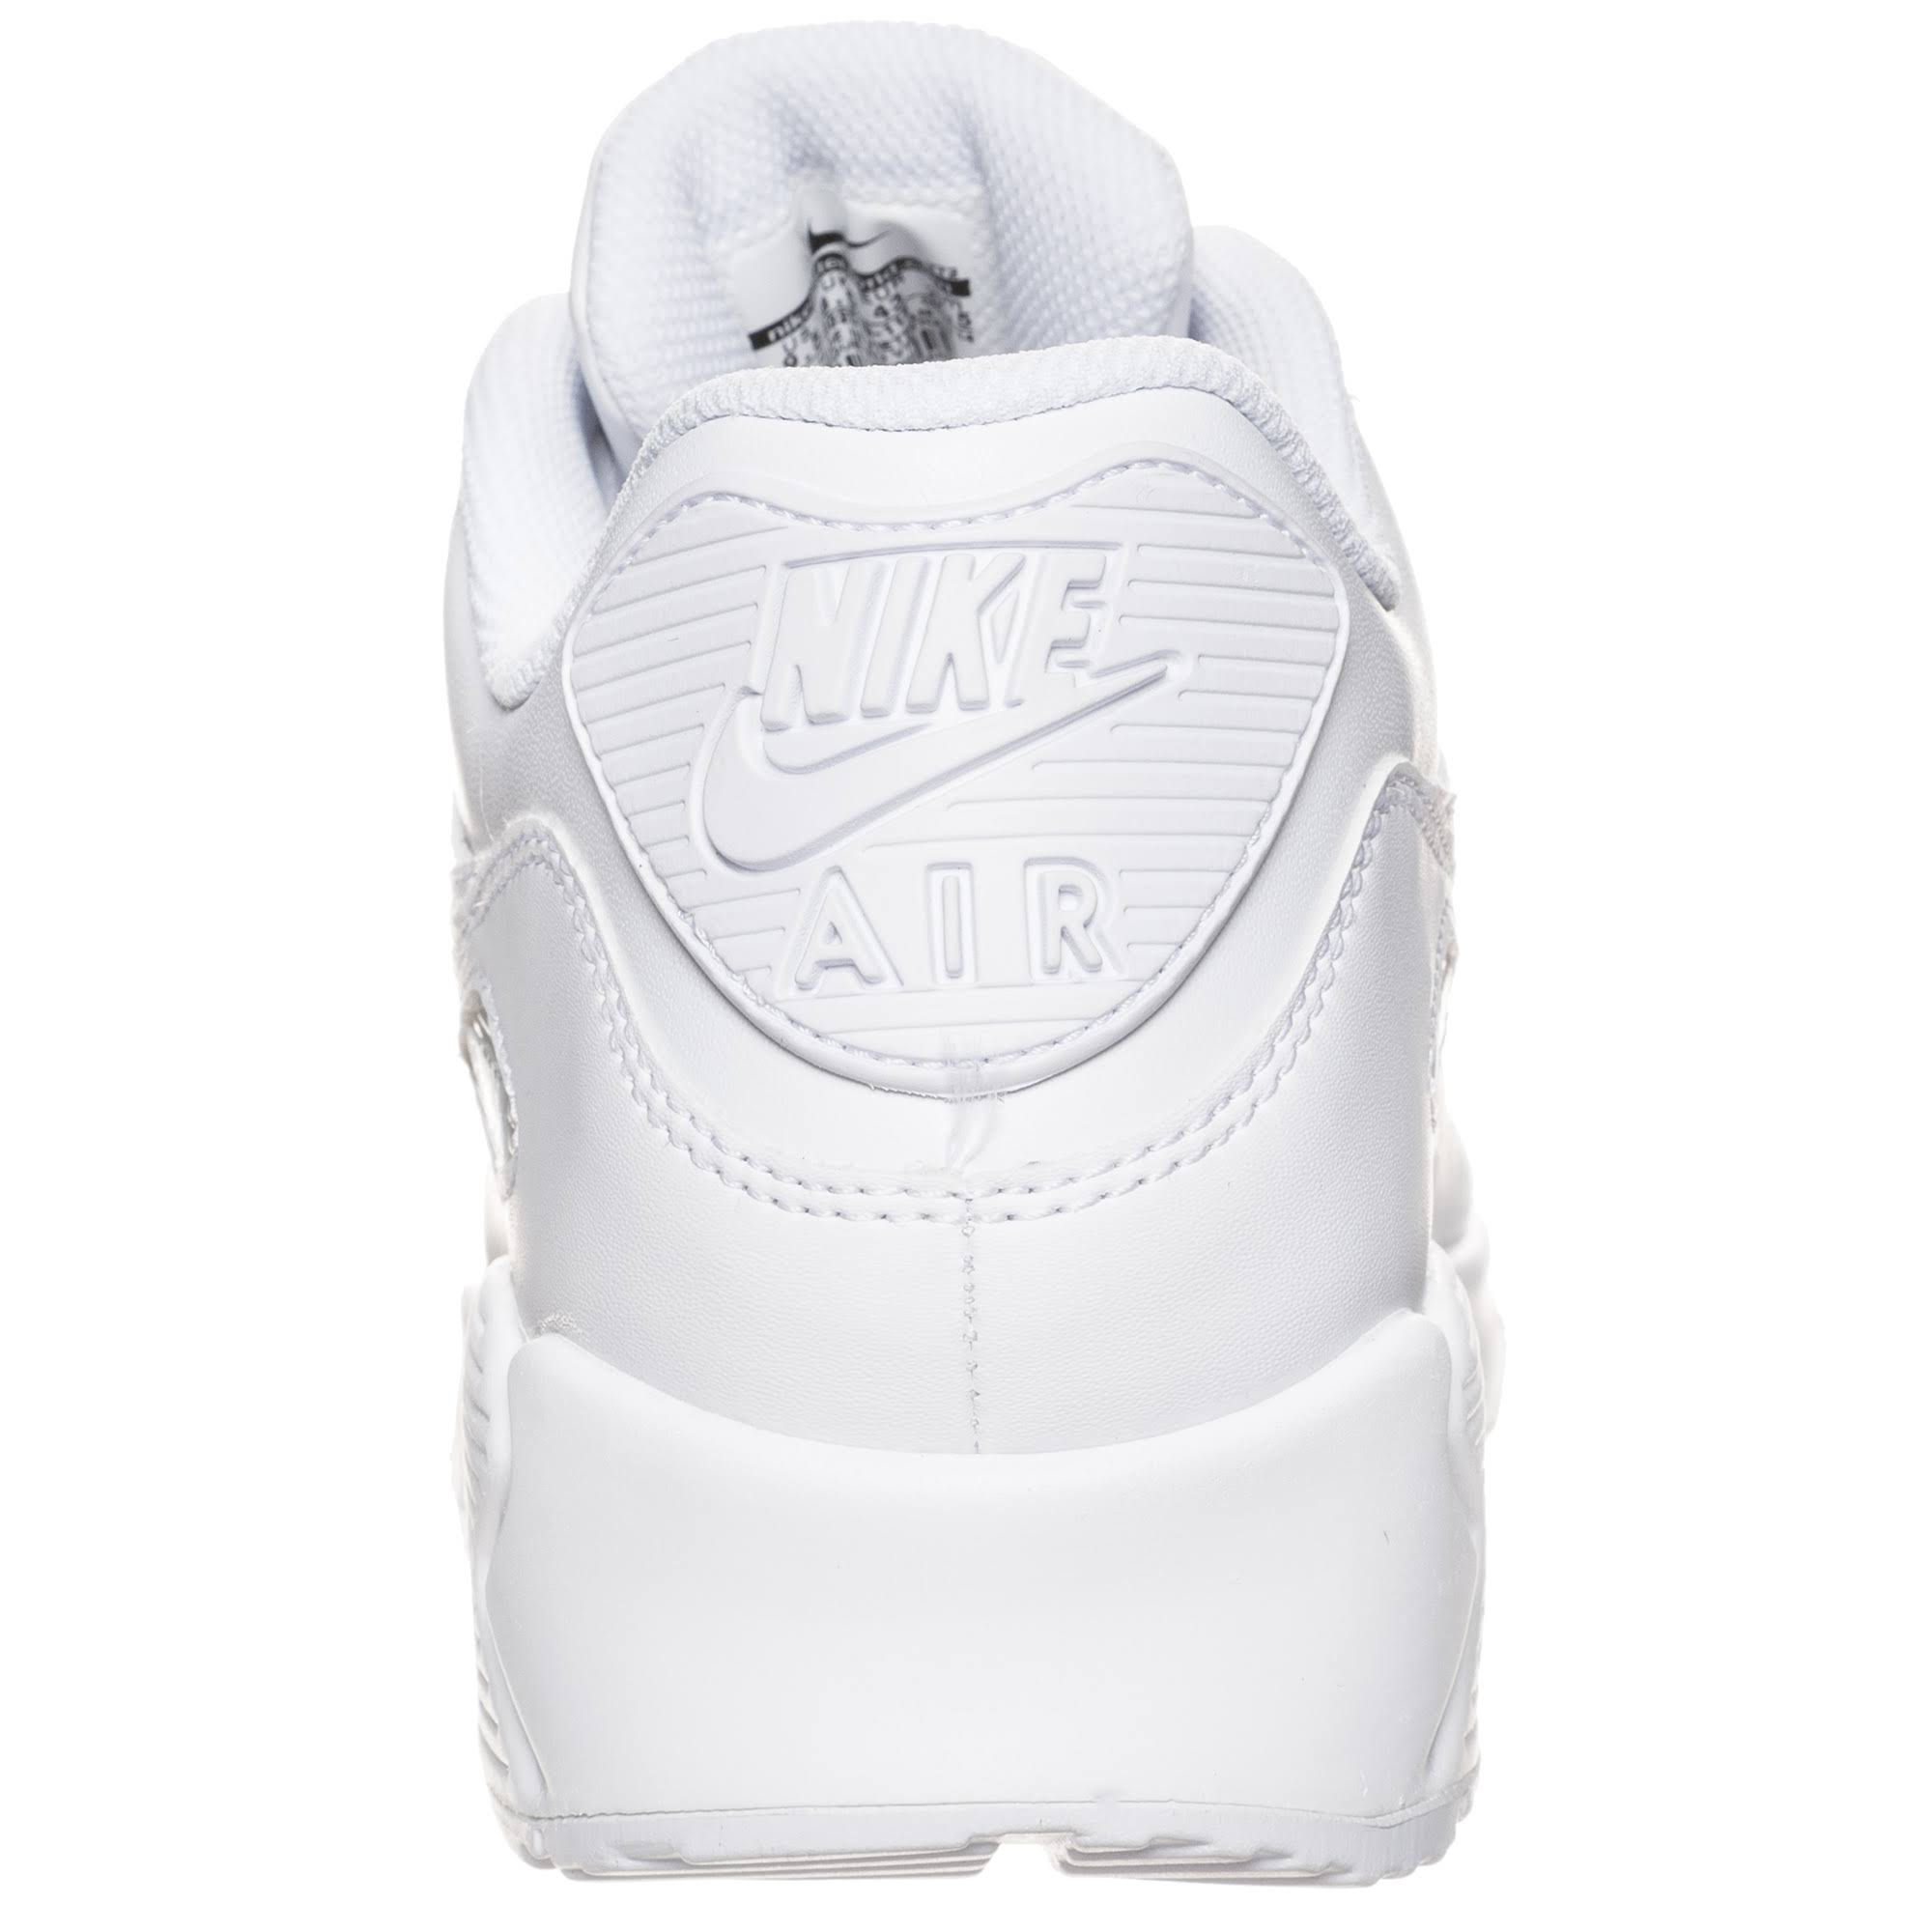 White white Herren Nike 5 Weiß Air Max Leather Gr 42 90 white XfxqgFT